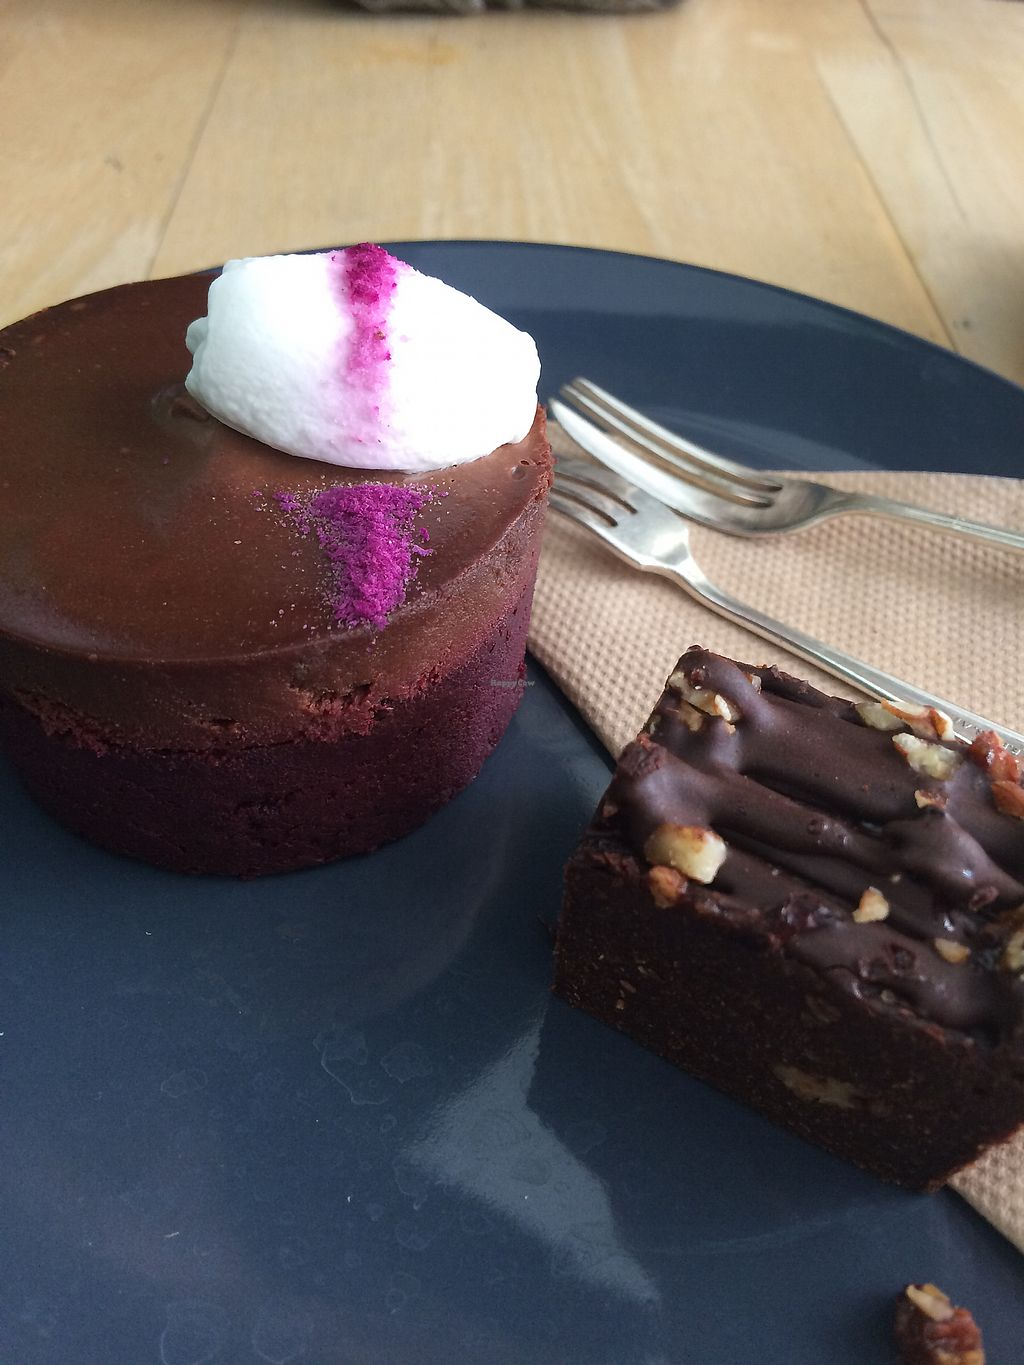 "Photo of The Little Shop of Plenty  by <a href=""/members/profile/veroniquerachel"">veroniquerachel</a> <br/>Beetroot cake and pecan brownie  <br/> December 17, 2017  - <a href='/contact/abuse/image/82402/336306'>Report</a>"